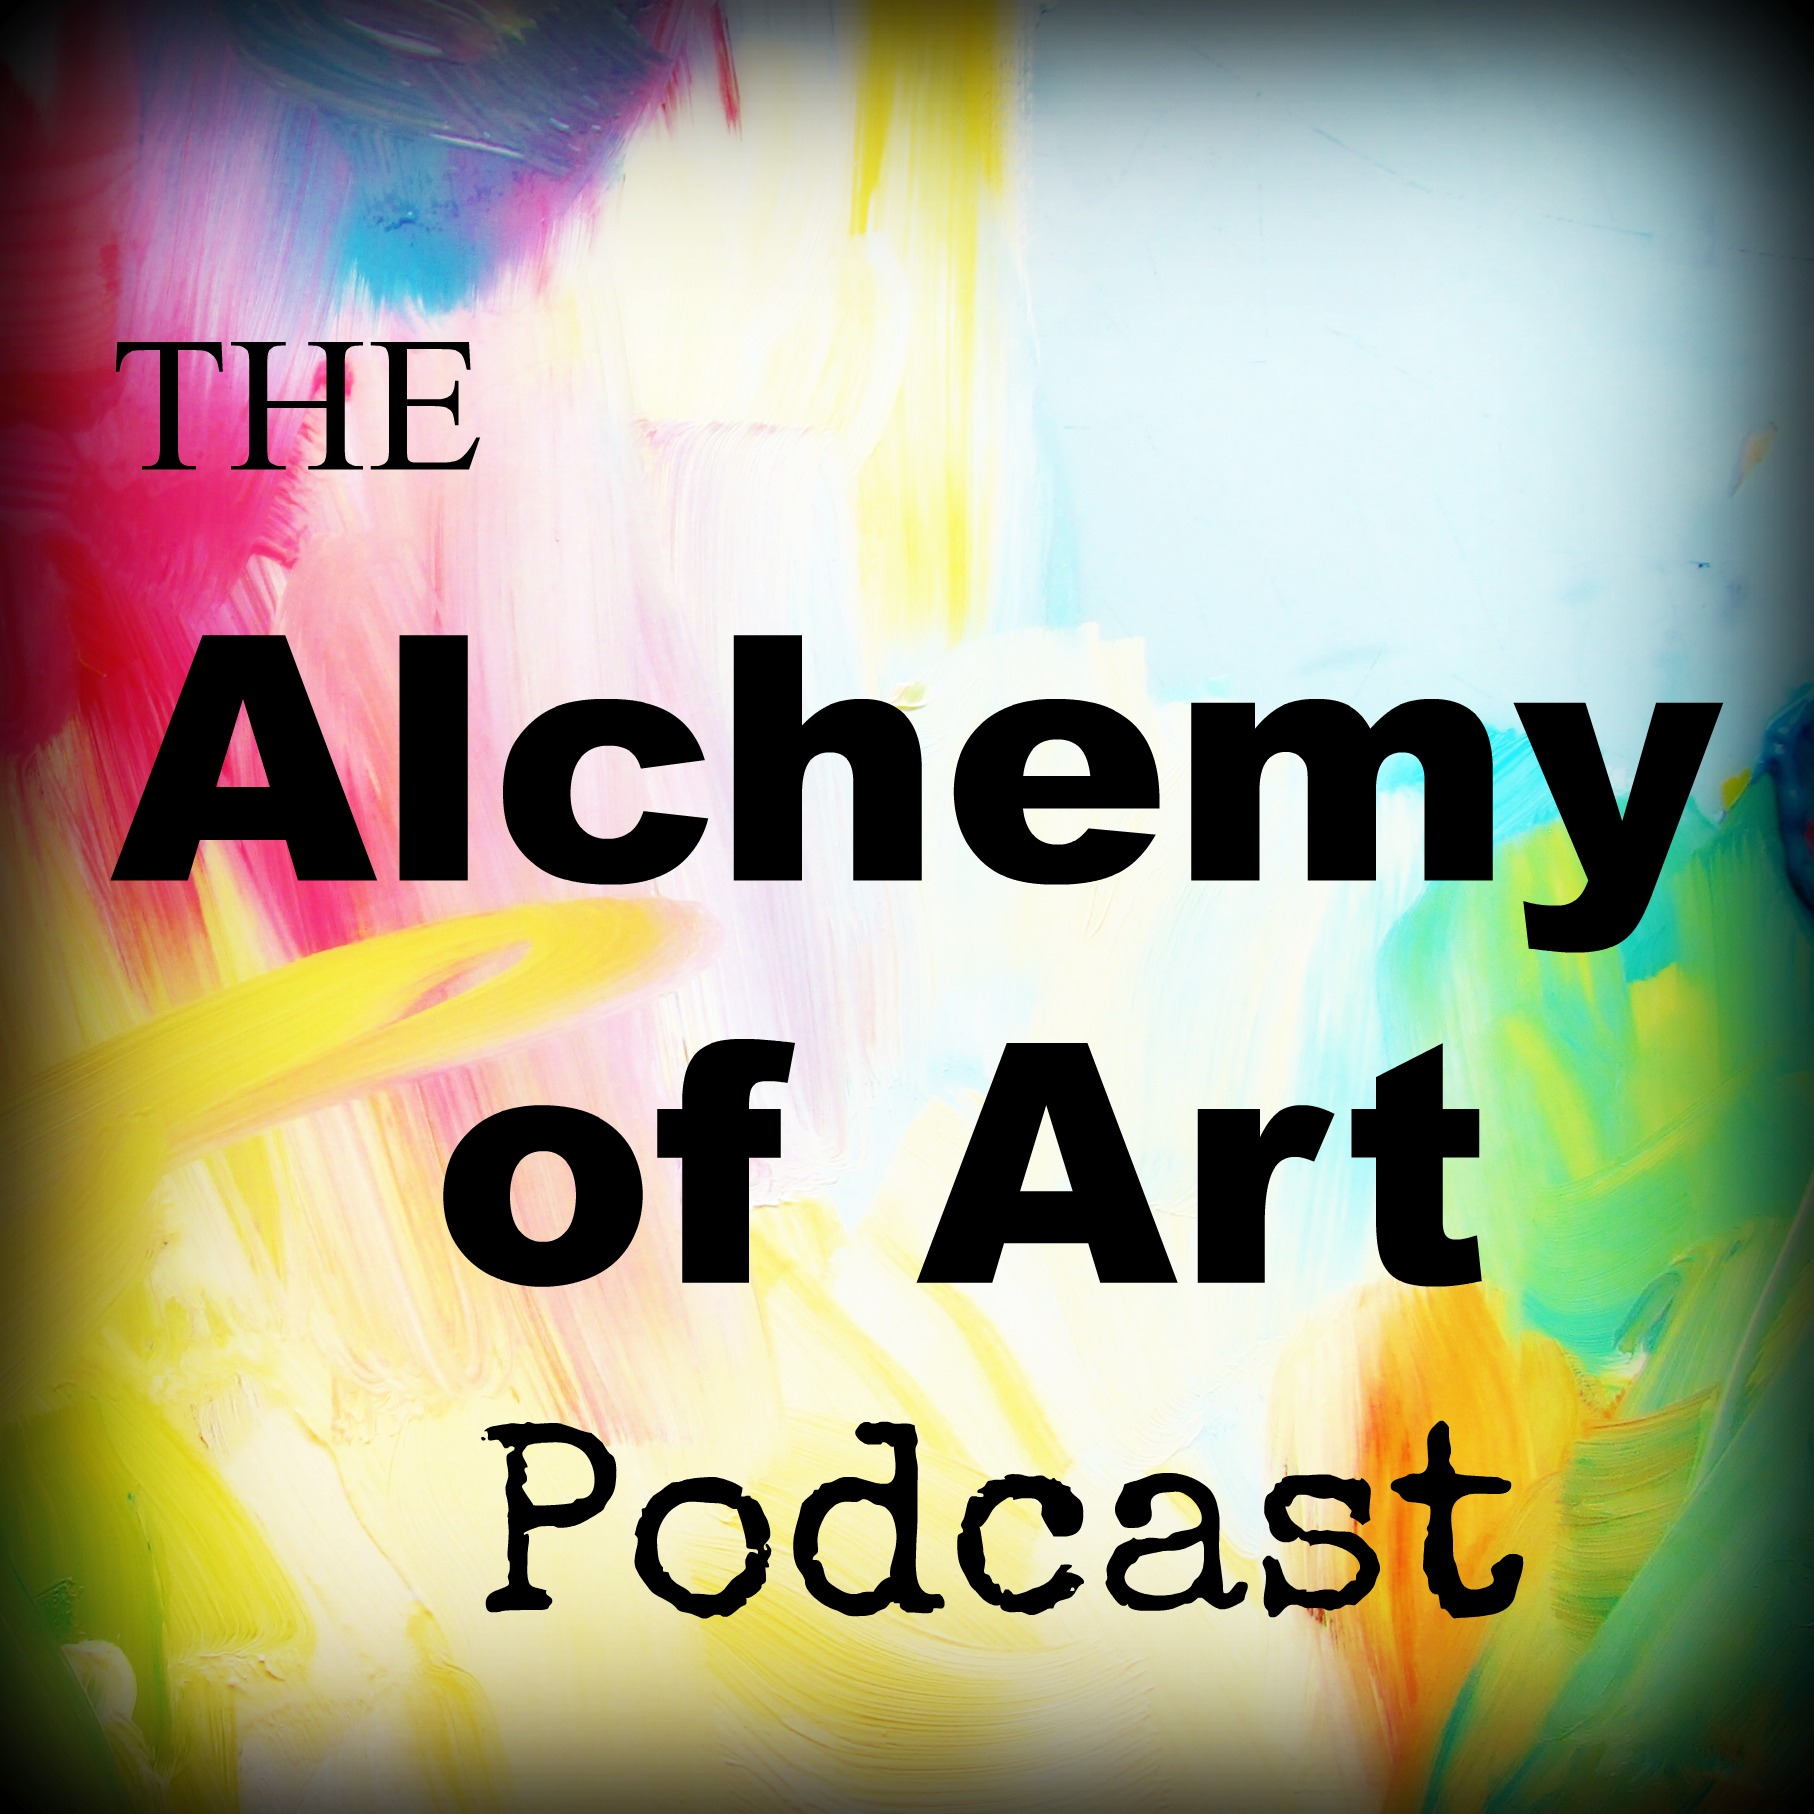 The Alchemy of Art Podcast